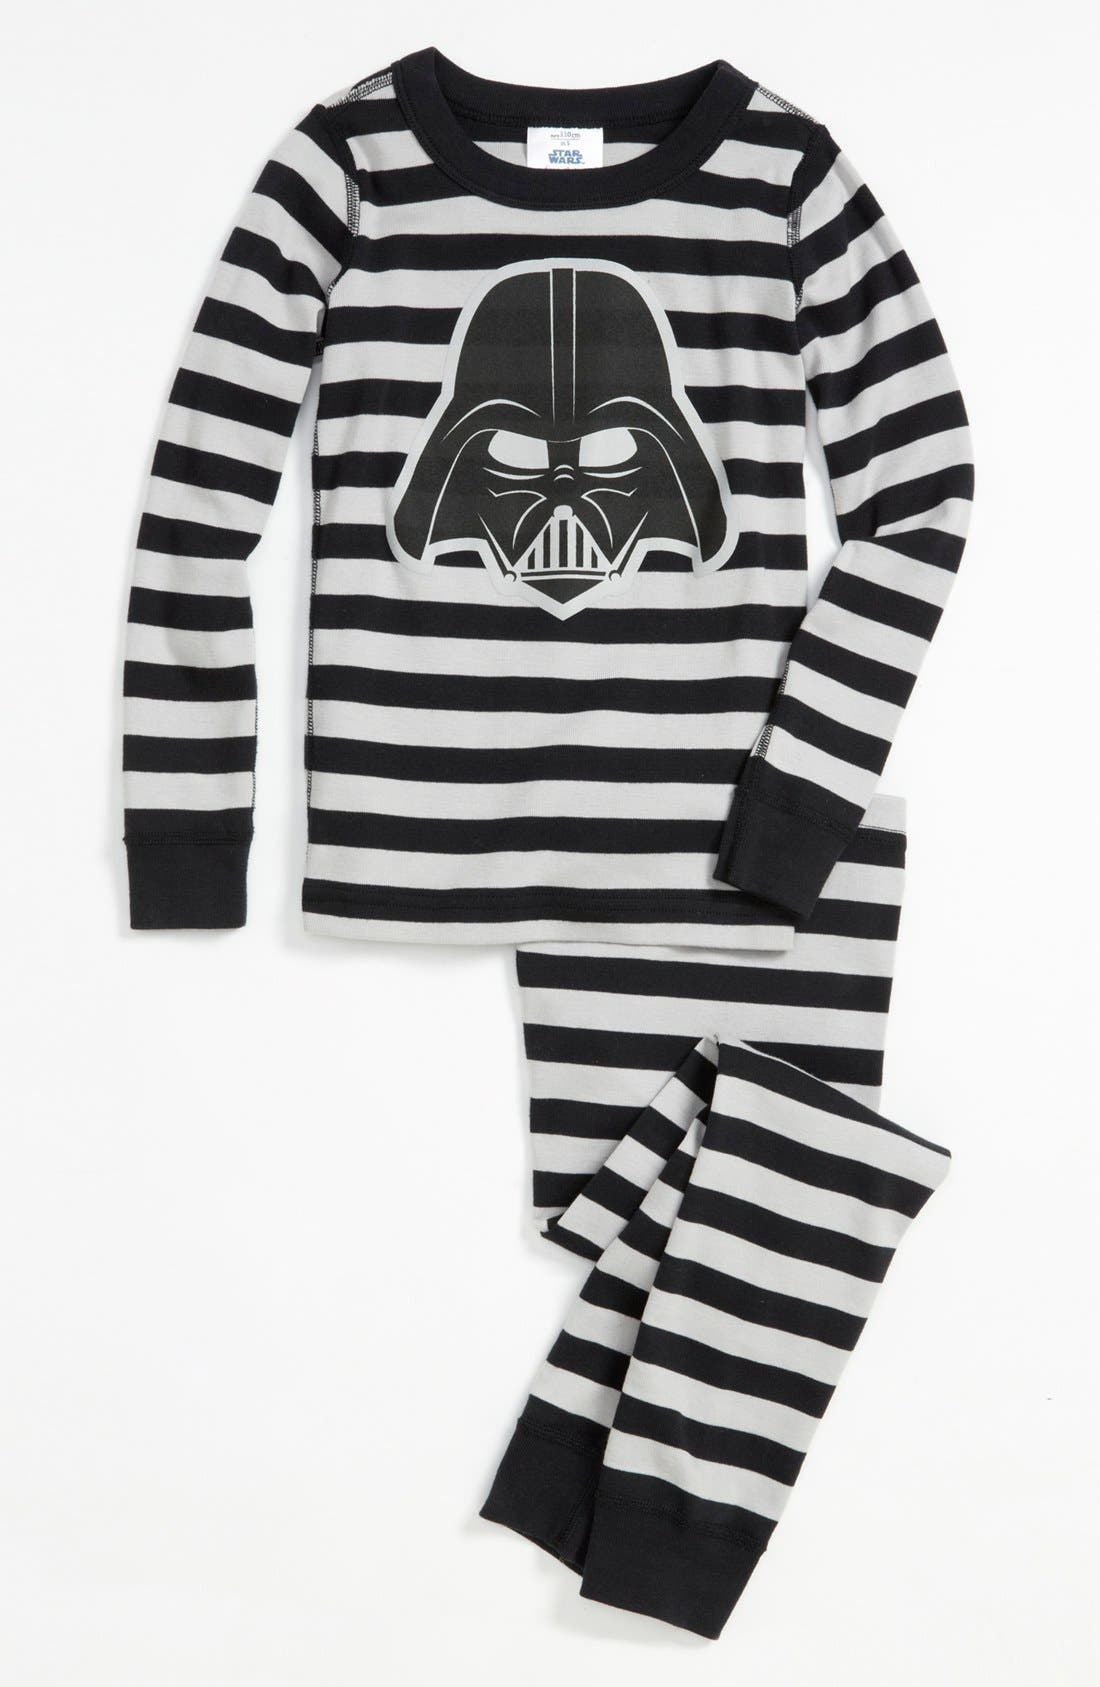 Alternate Image 1 Selected - Hanna Andersson Darth Vader™ Organic Cotton Fitted Two-Piece Pajamas (Toddler Boys, Little Boys & Big Boys)